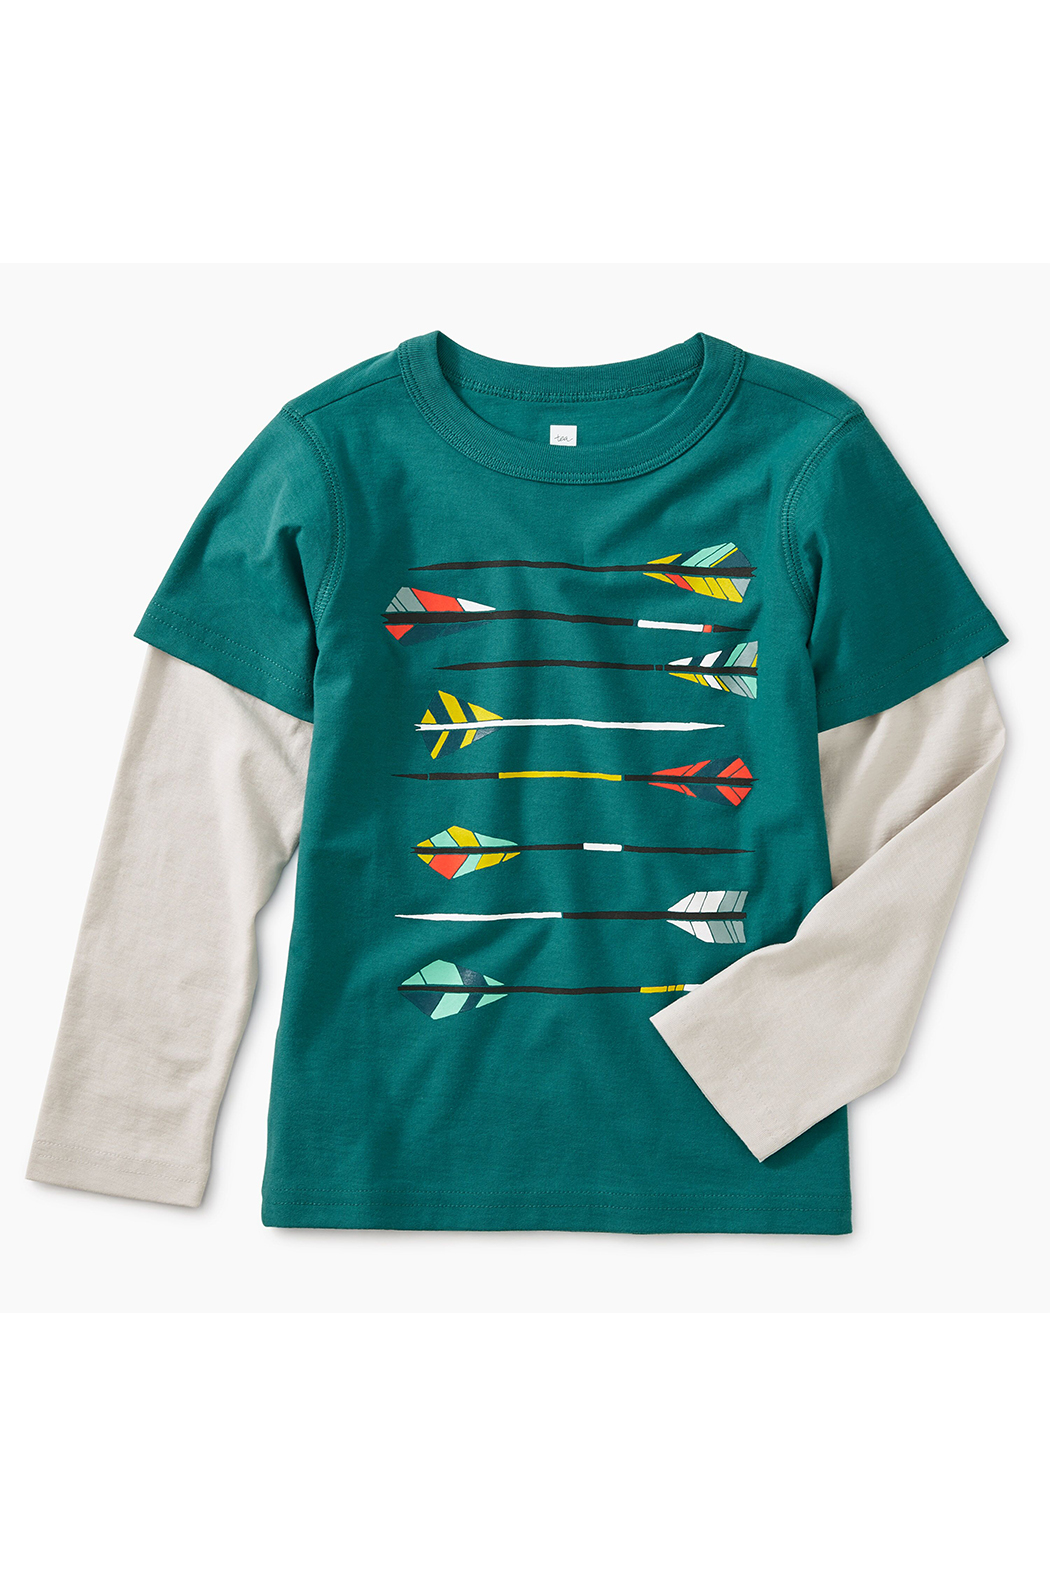 Tea Collection Archery Graphic Layered Tee - Main Image